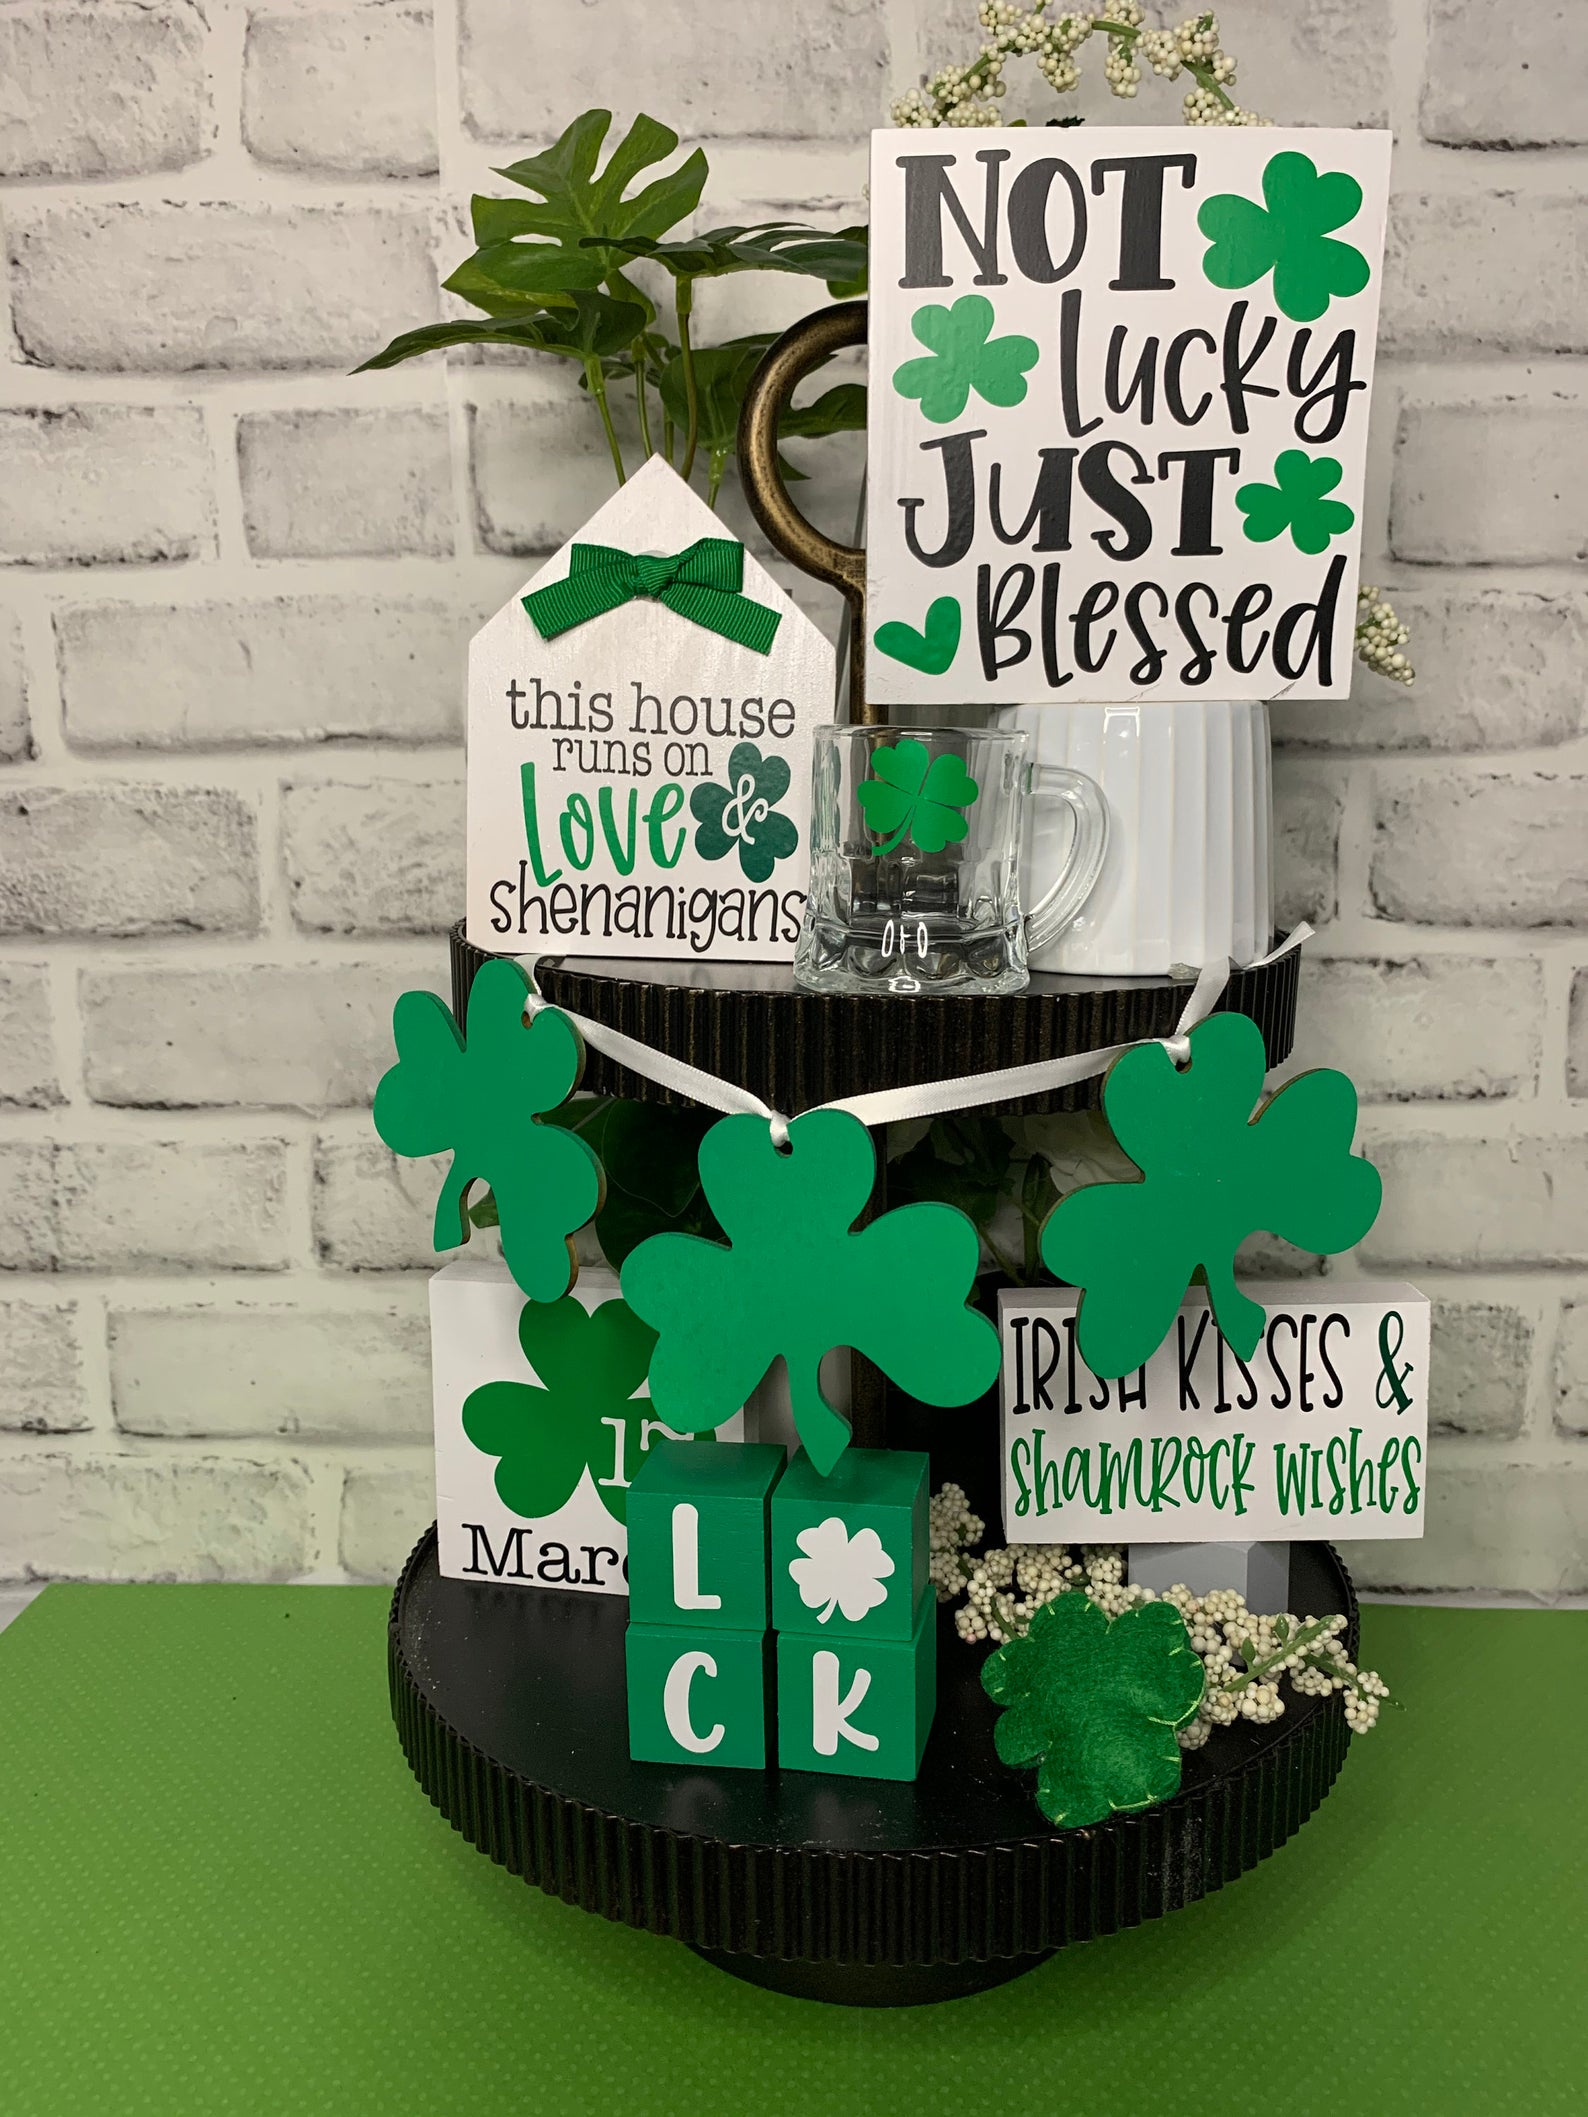 Decoration ideas for St. Patrick & # 39; s Day with shamrock